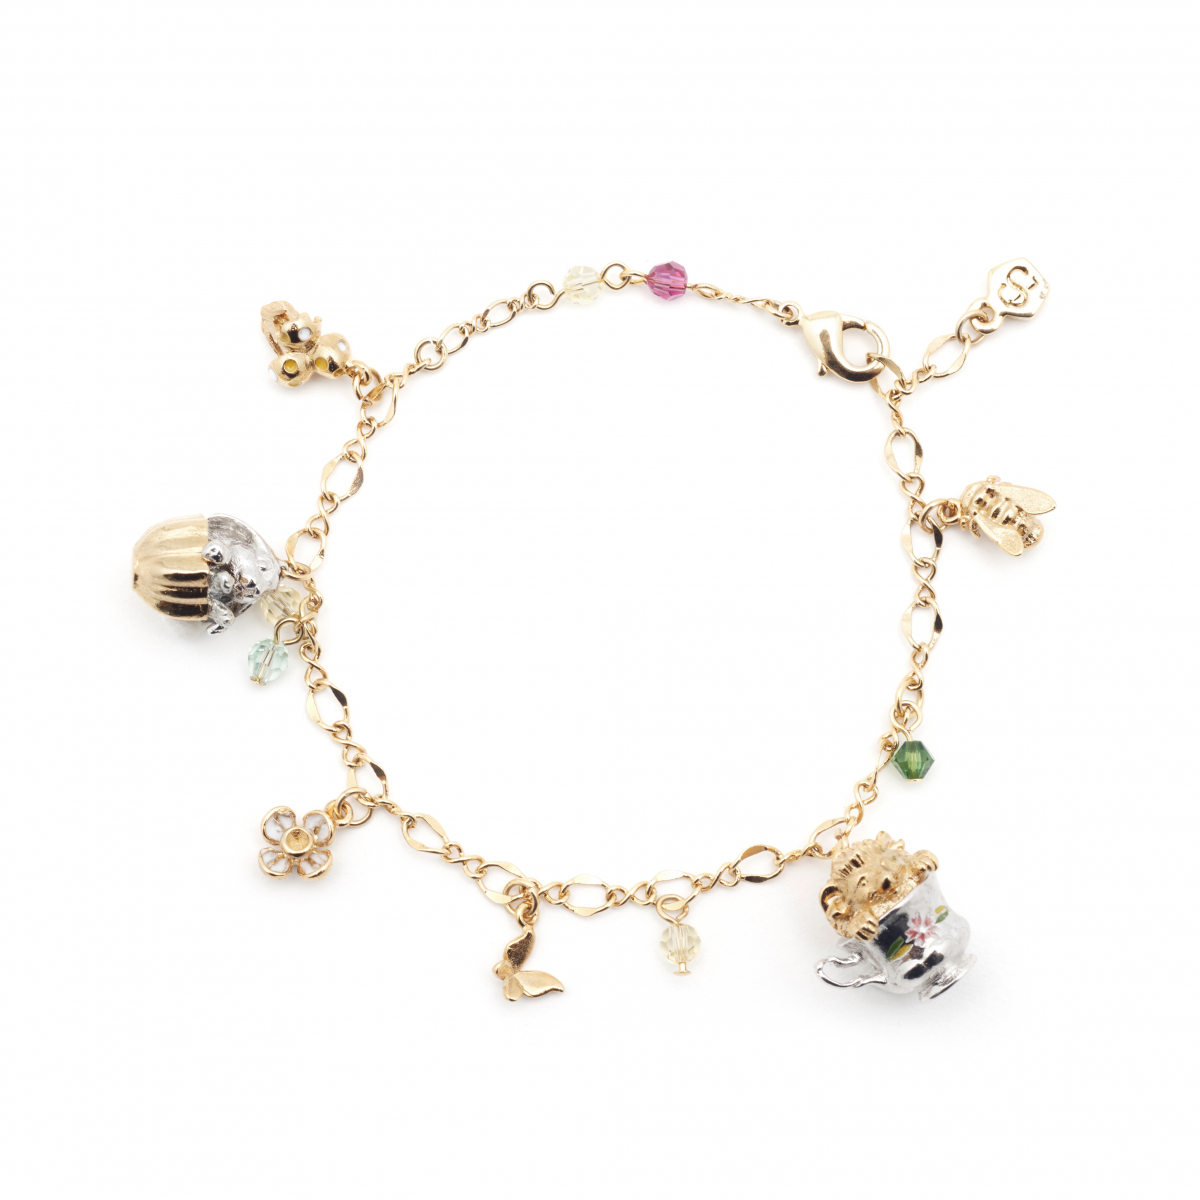 Tea Party Animal Charm Bracelet